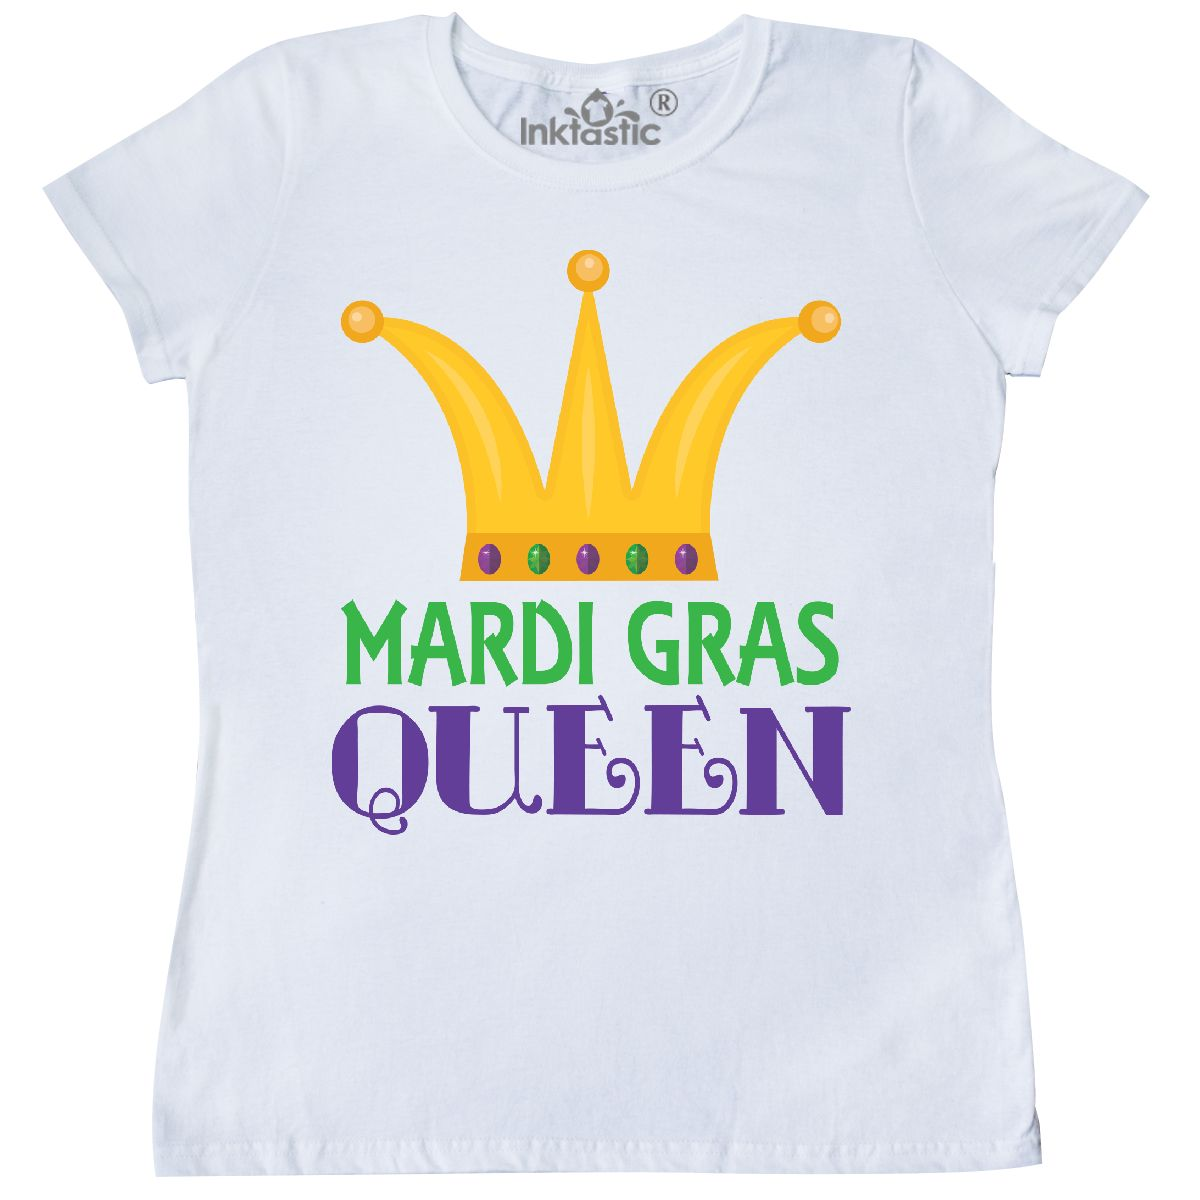 Unisex Clothing Inktastic Mardi Gras Masks 2019 Party Youth T-shirt Holiday Comedy Tragedy Cute